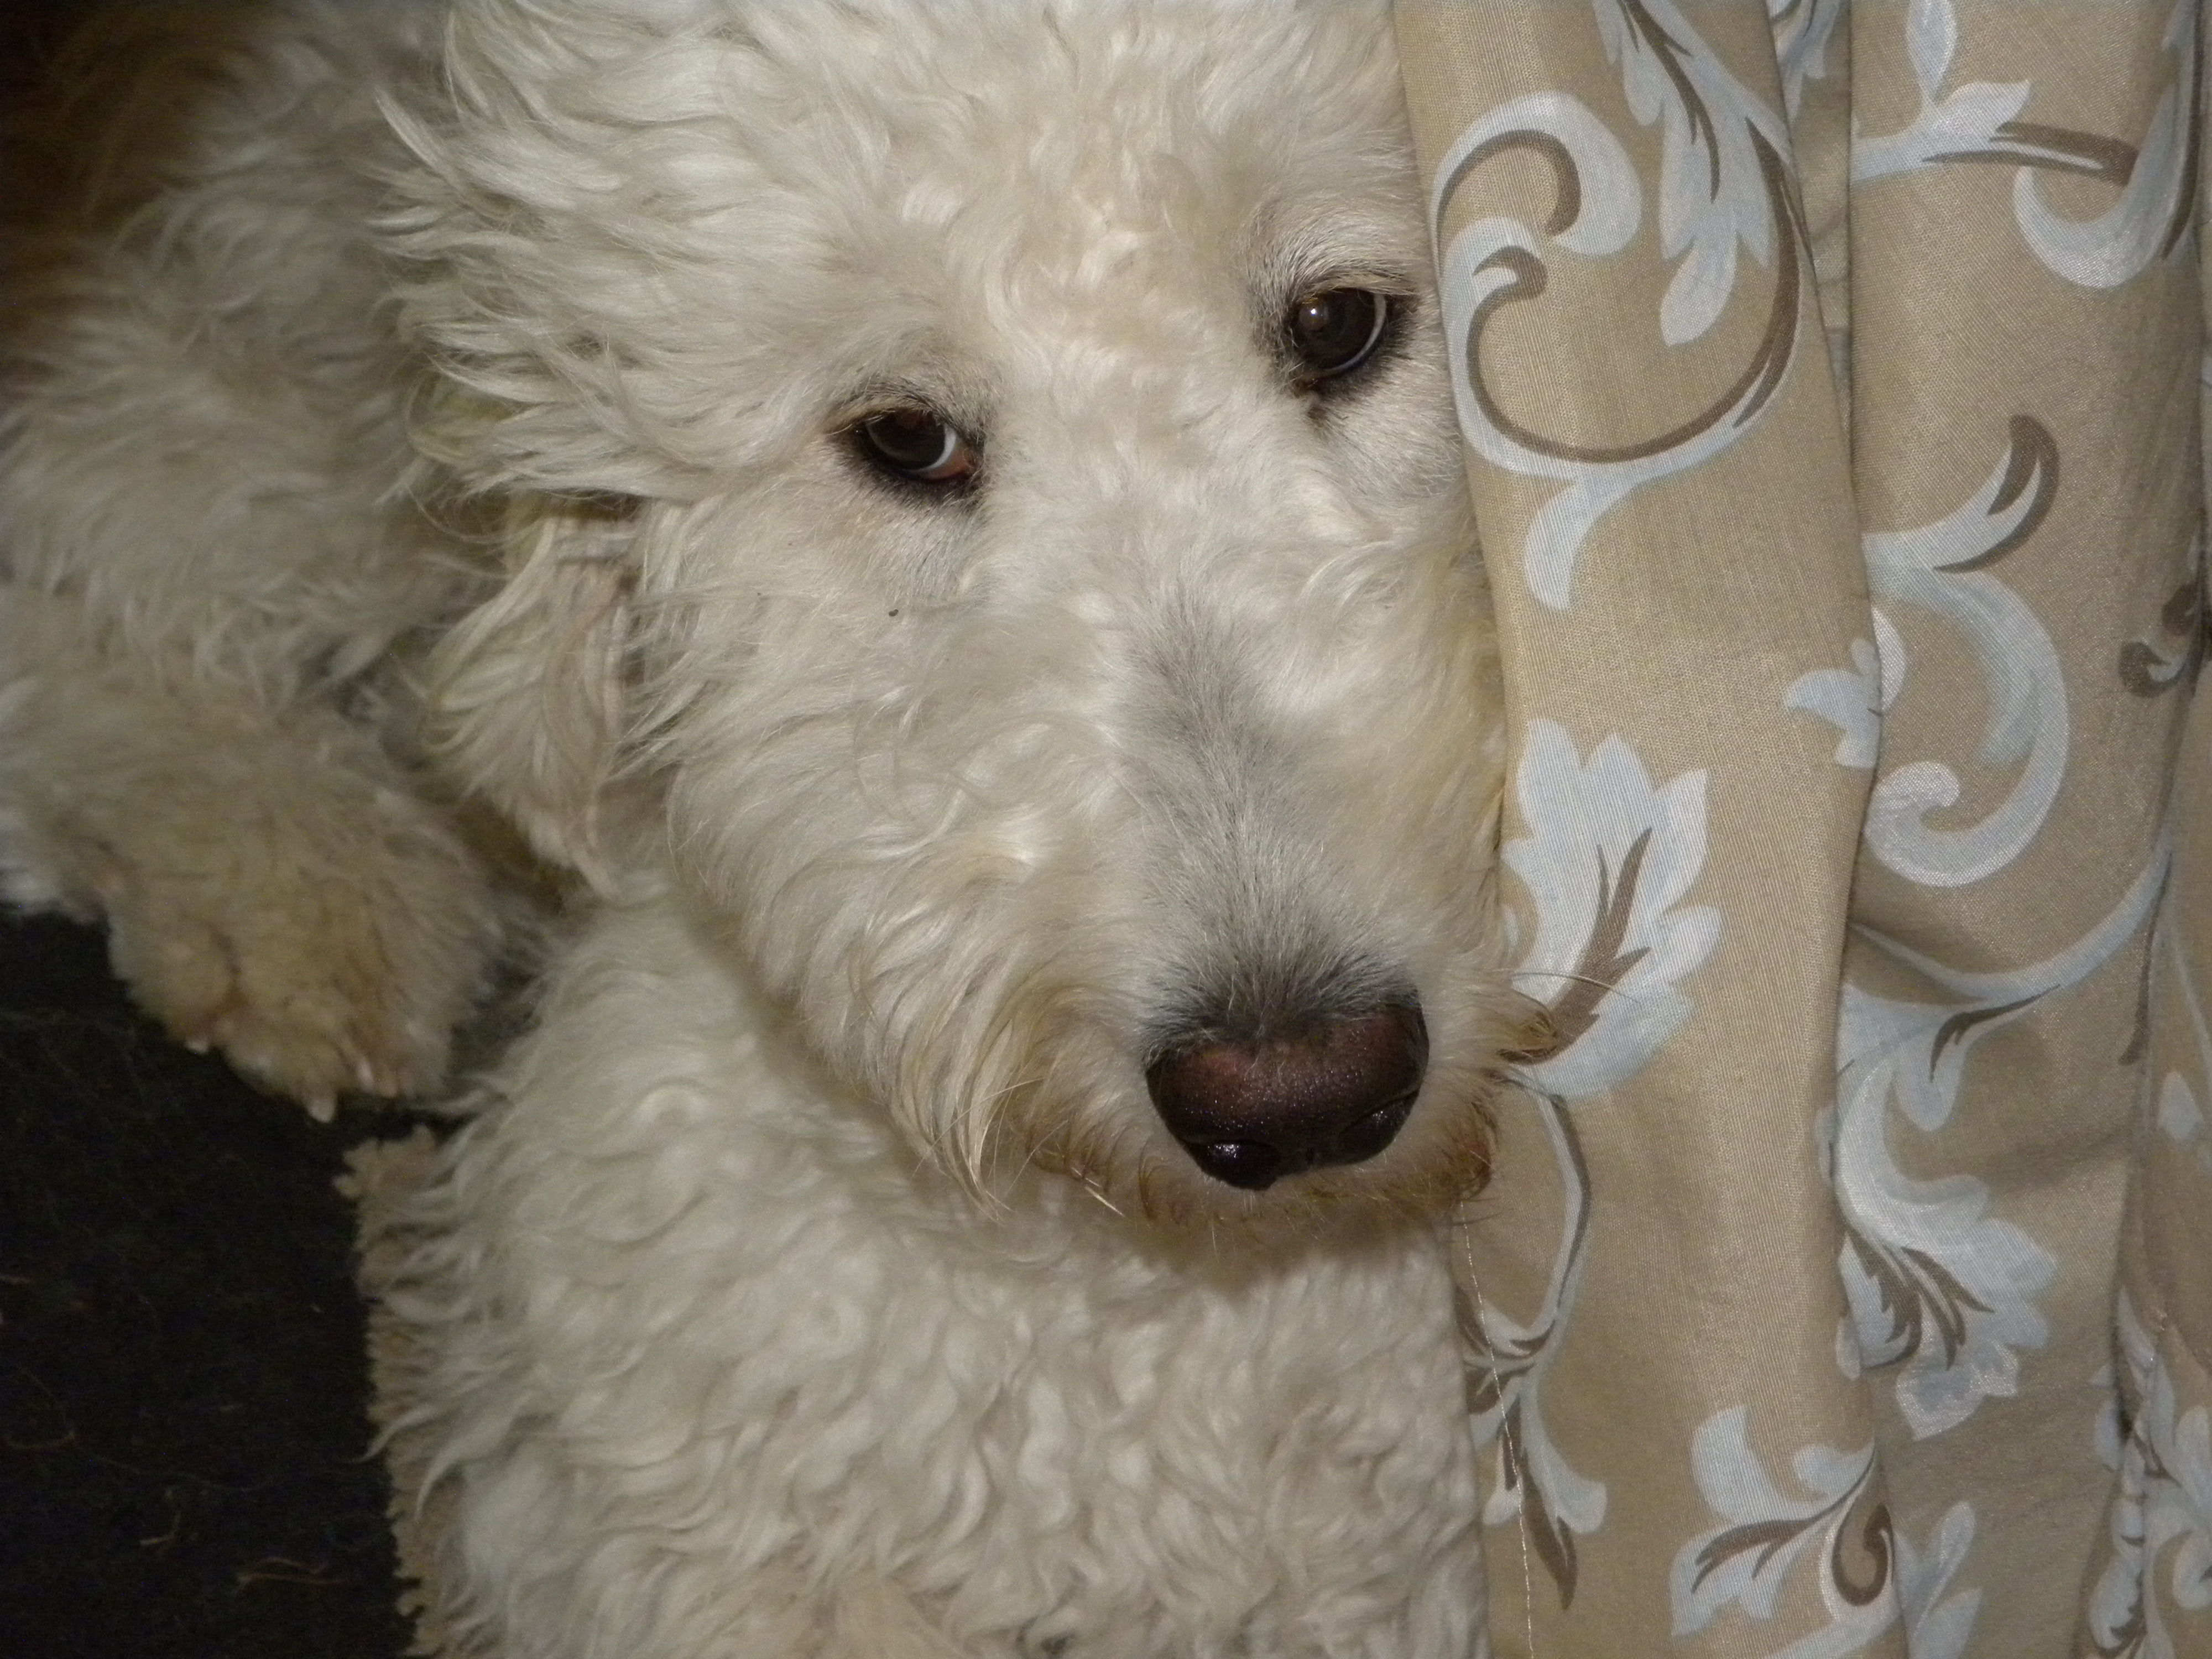 Baby f1 goldendoodle aussiedoodle and labradoodle puppies baby is hiding from me and the camera in this picture nvjuhfo Images